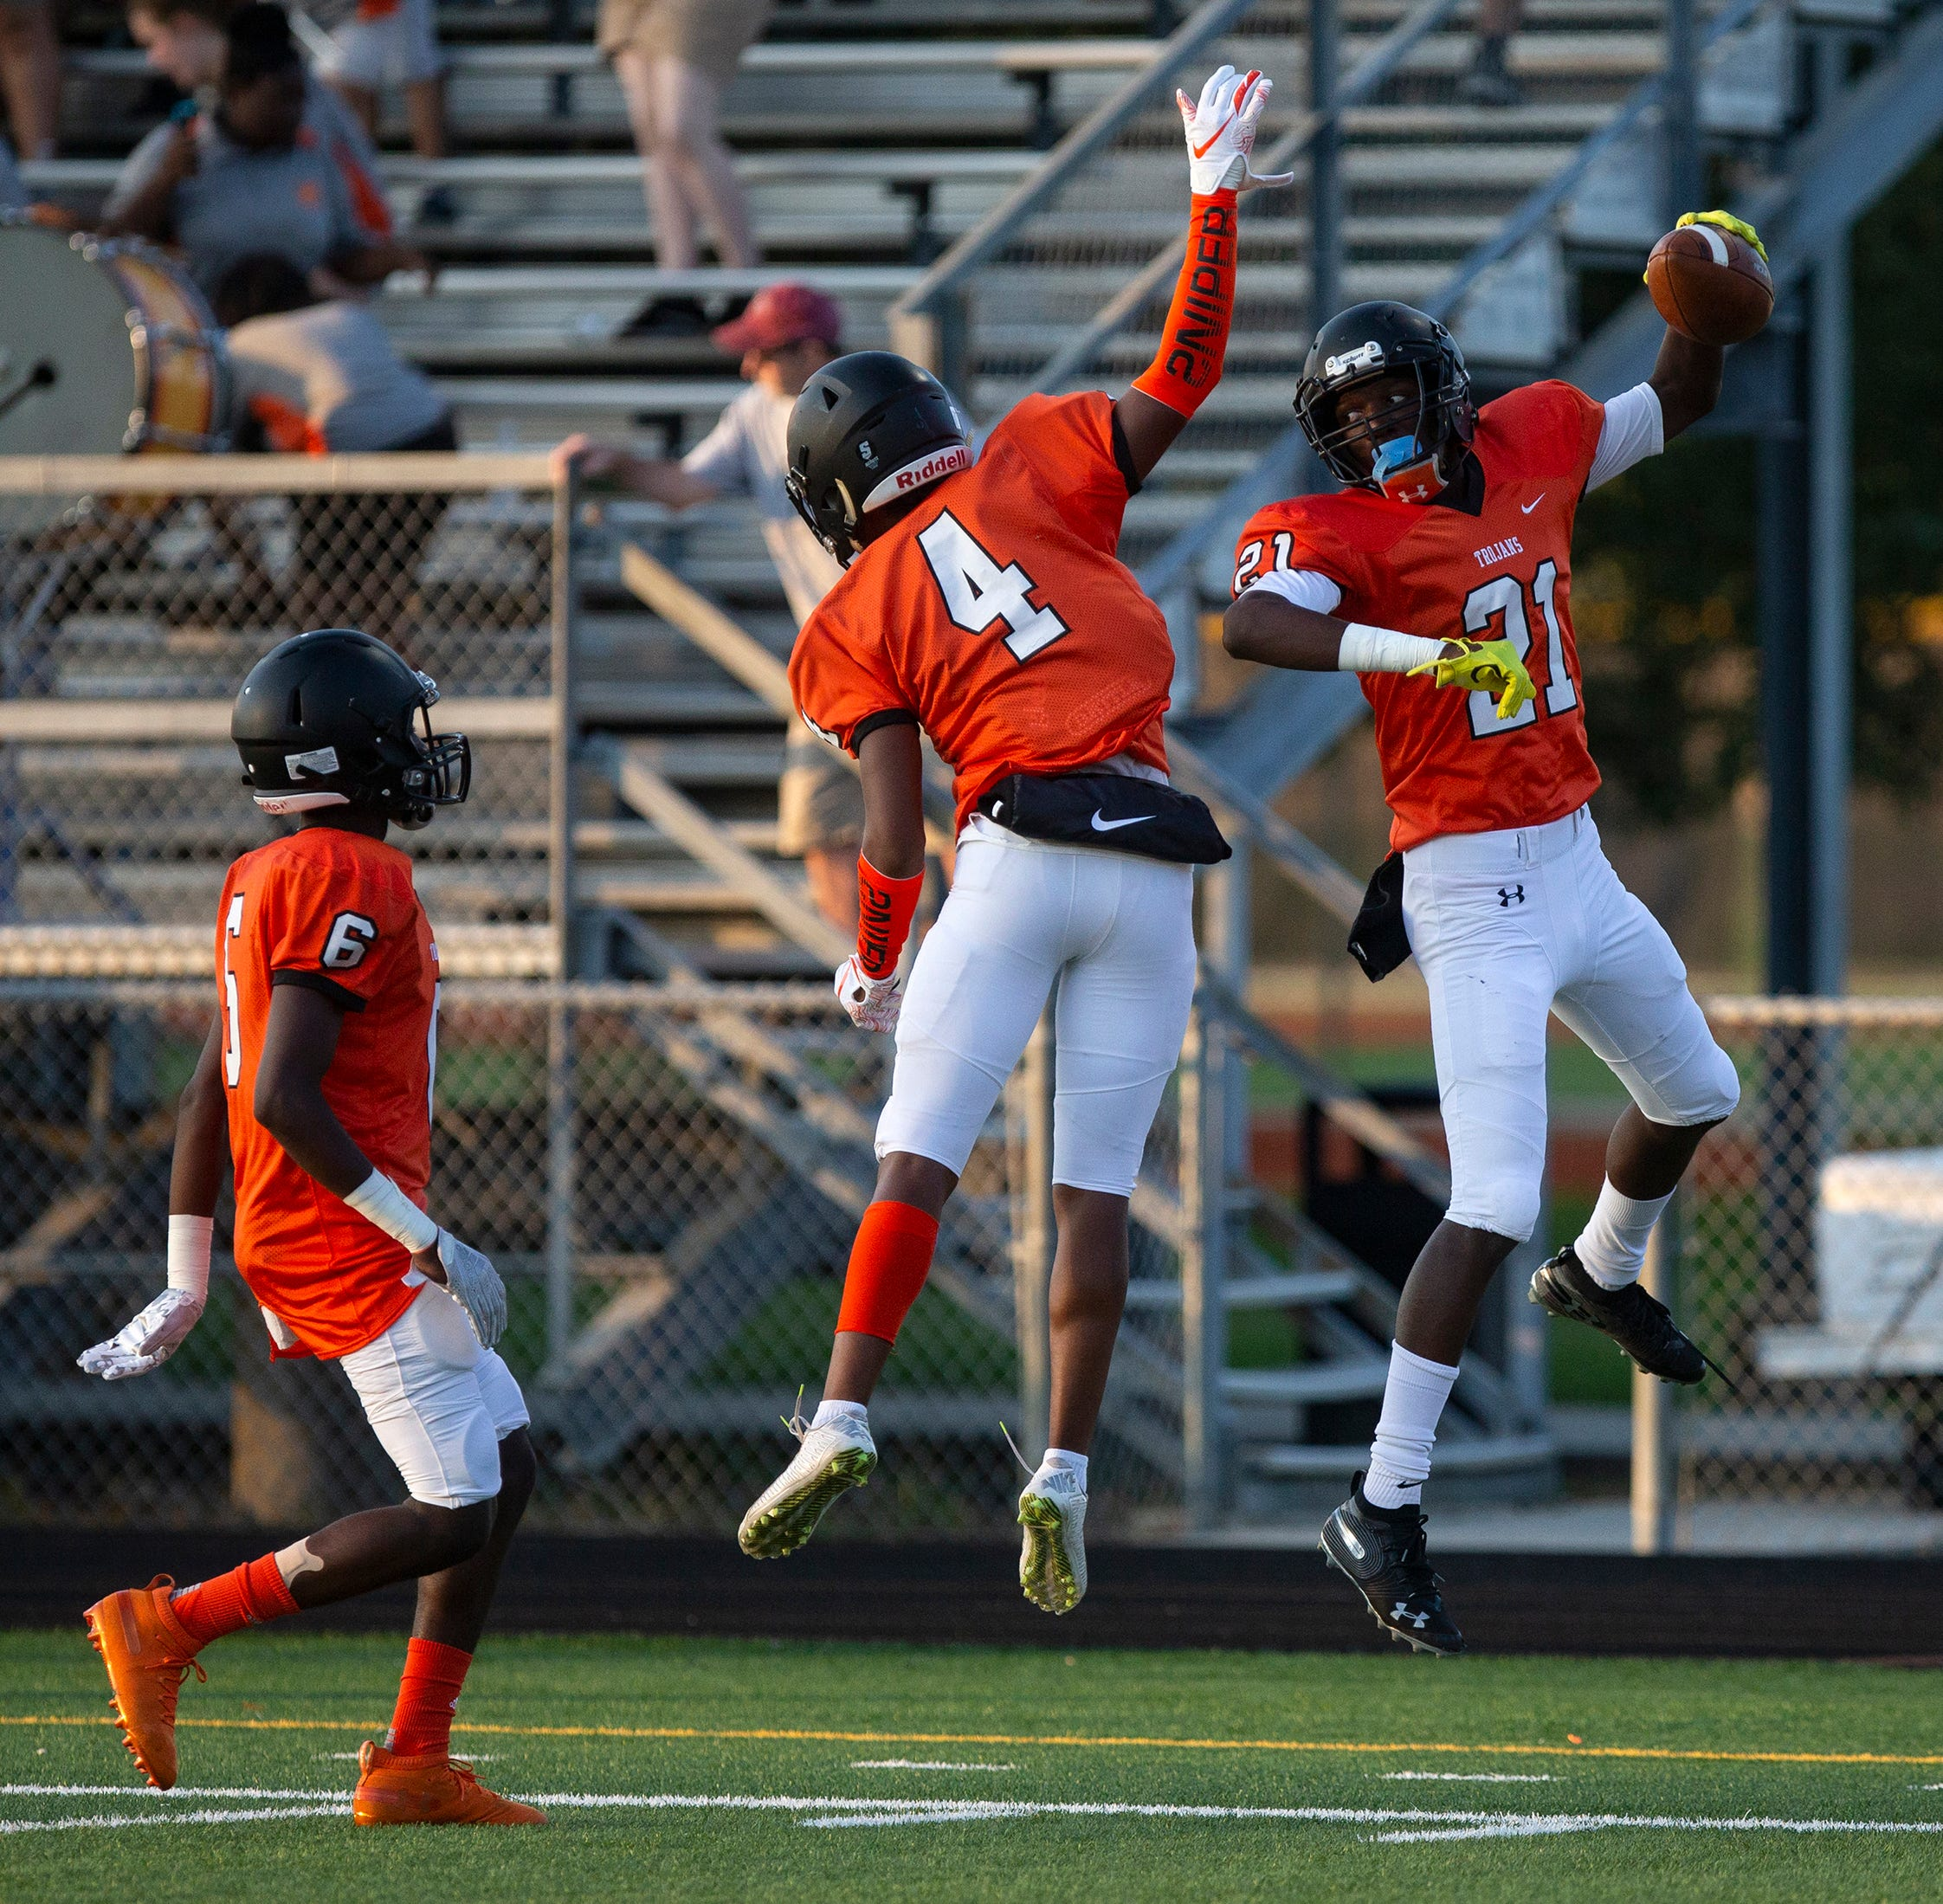 Football: Lely opens J.J. Everage era with impressive spring performance in jamboree